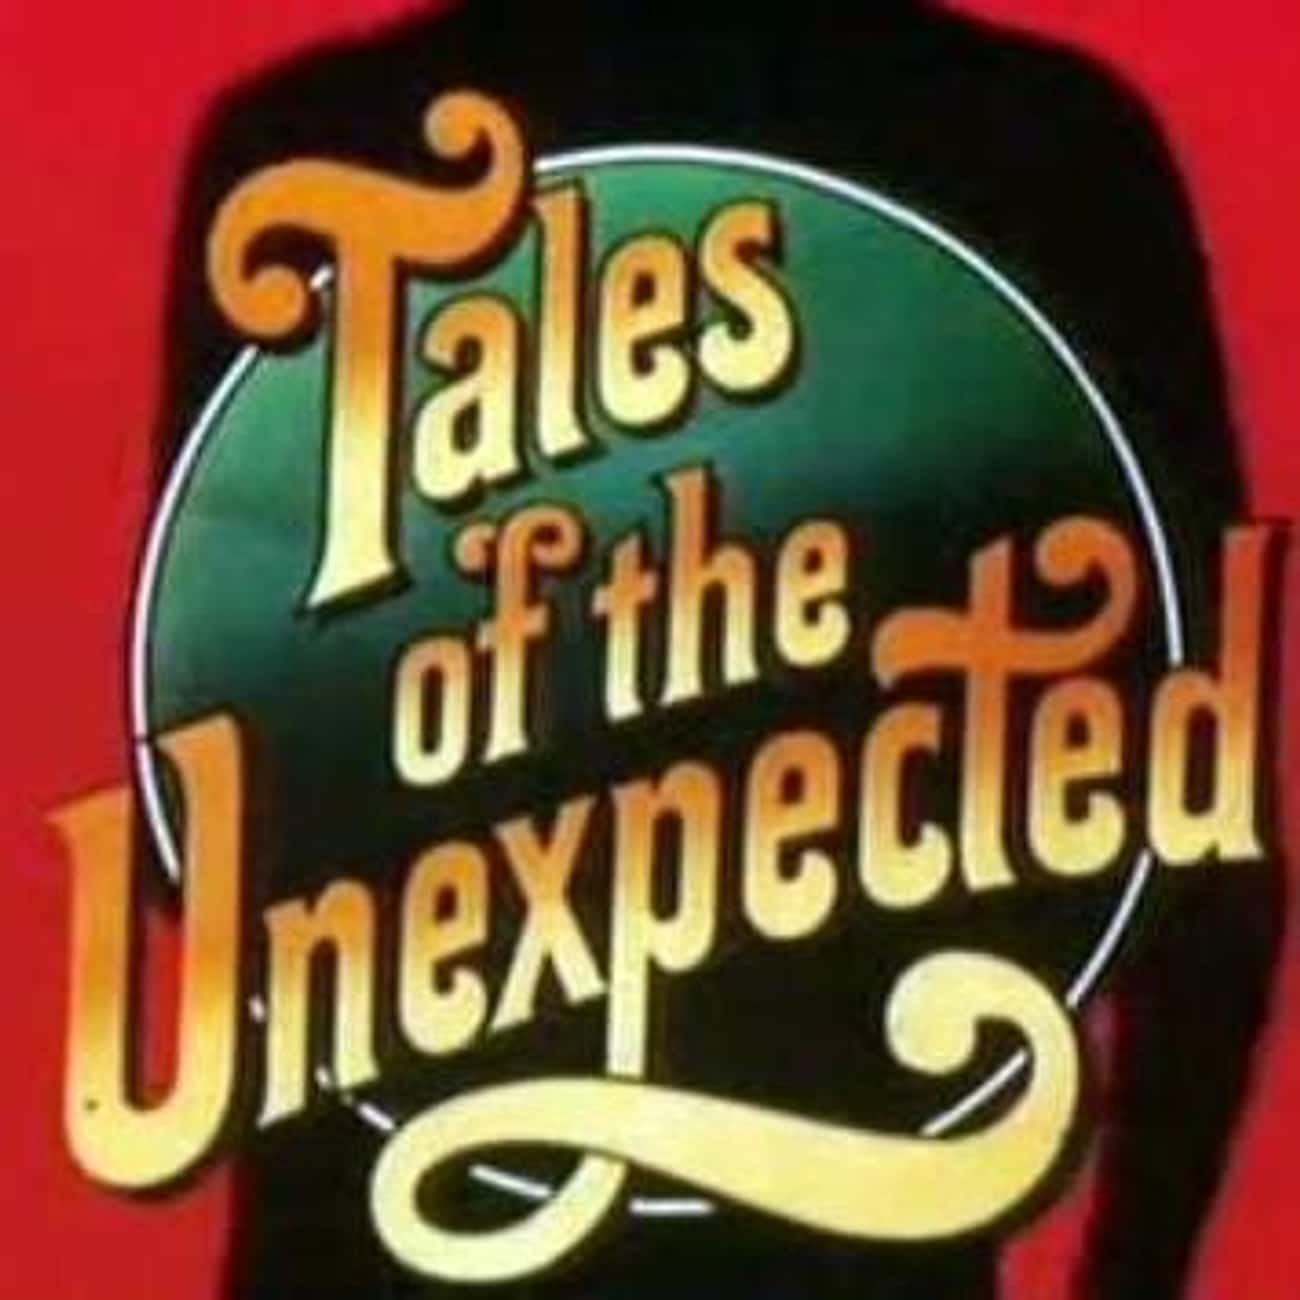 Tales of the Unexpected (US) is listed (or ranked) 4 on the list The Best 1970s Horror Series